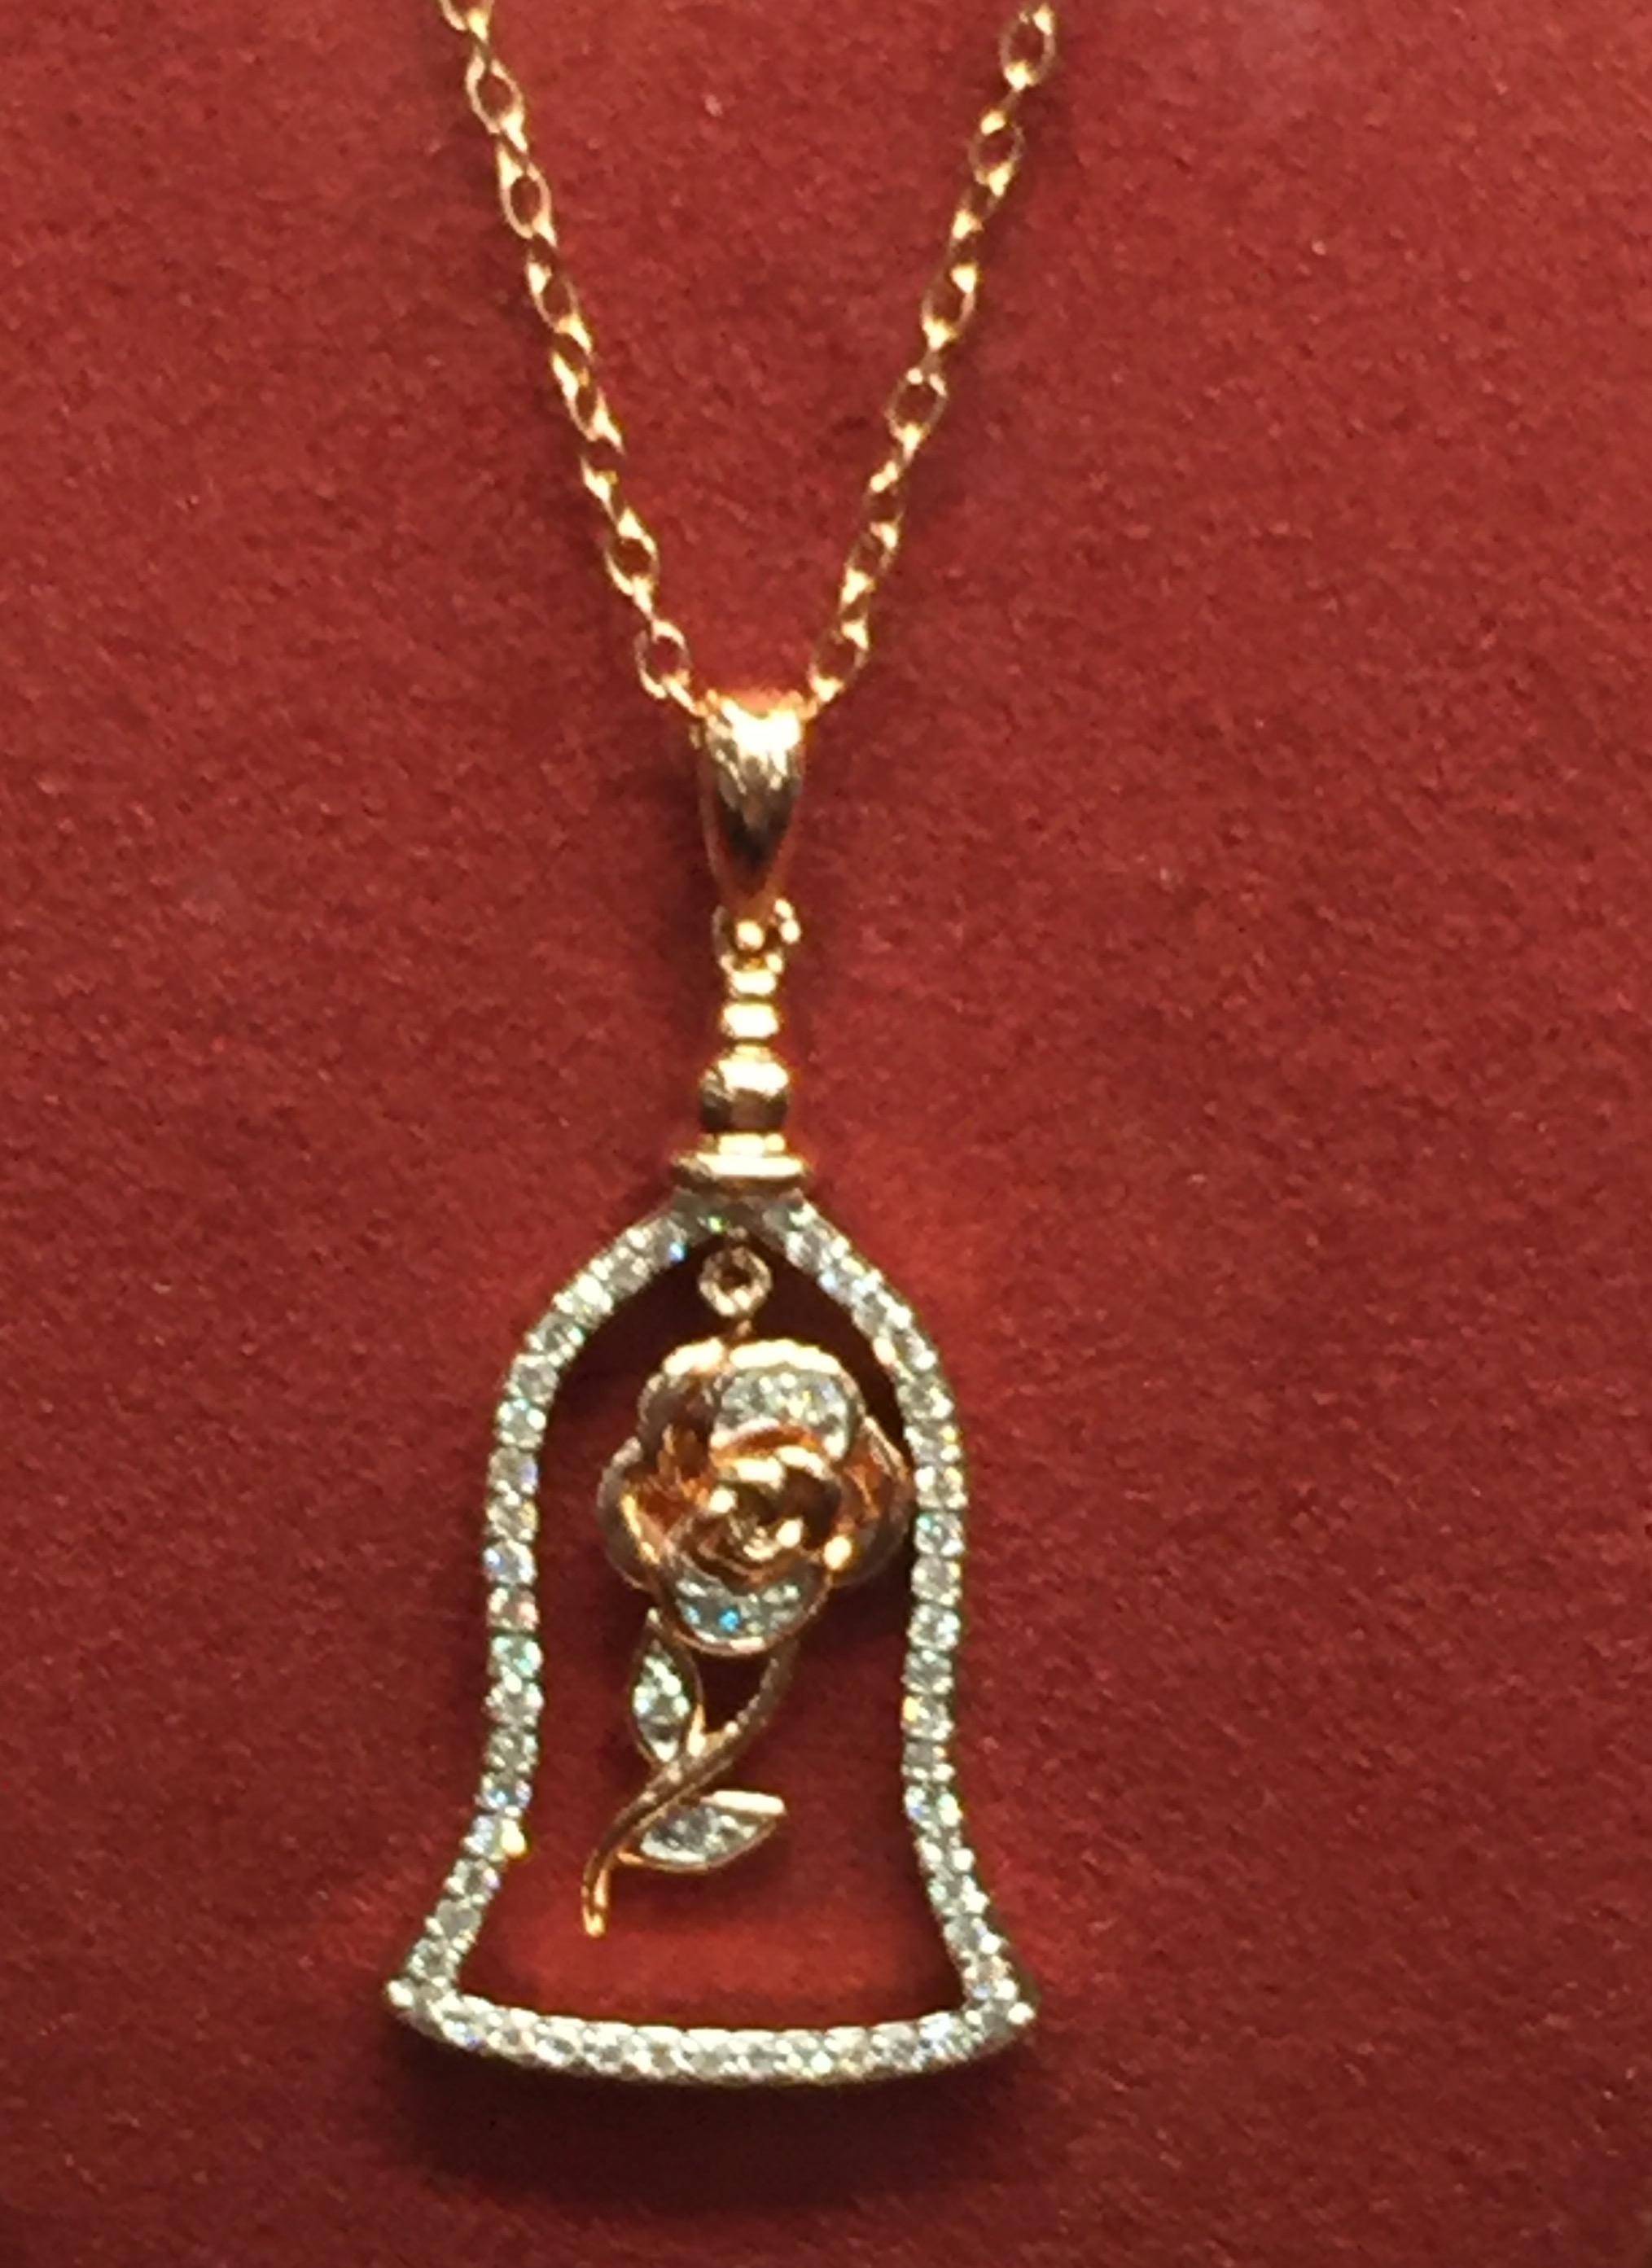 Disneyu0026#39;s Beauty And The Beast Jewelry Will Enchant You